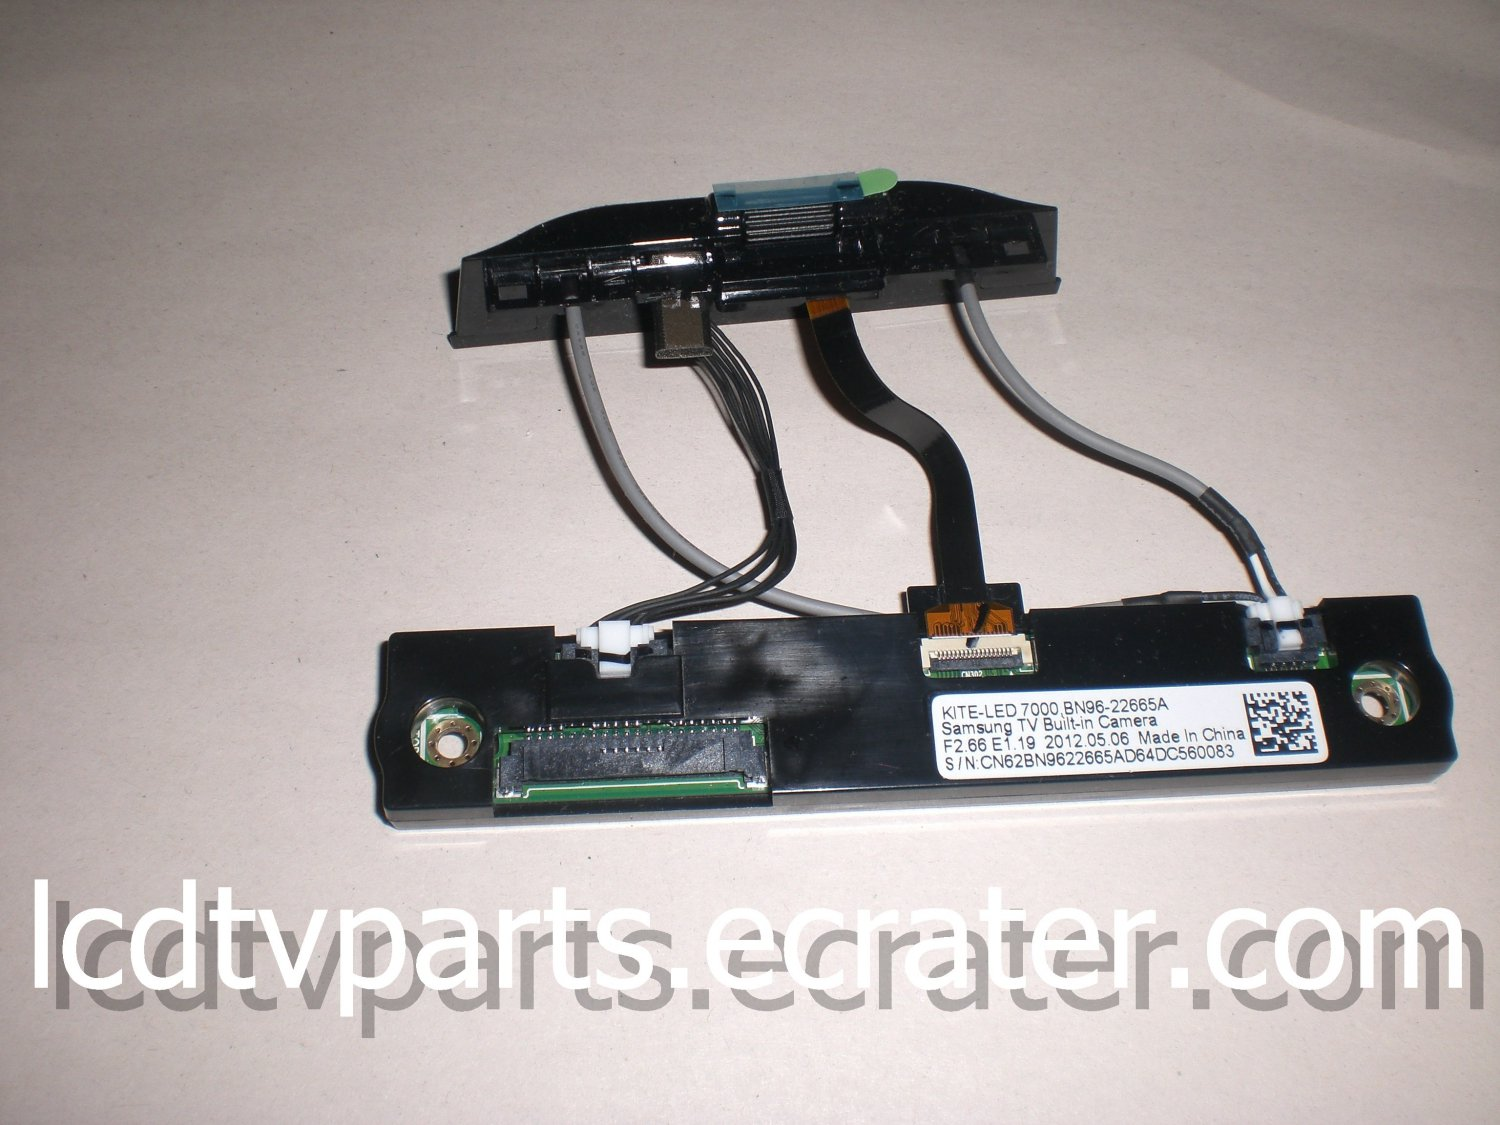 BN96-22665A, CN62BN9622665ADC560083 Built-In Camera for SAMSUNG UN55ES7500F